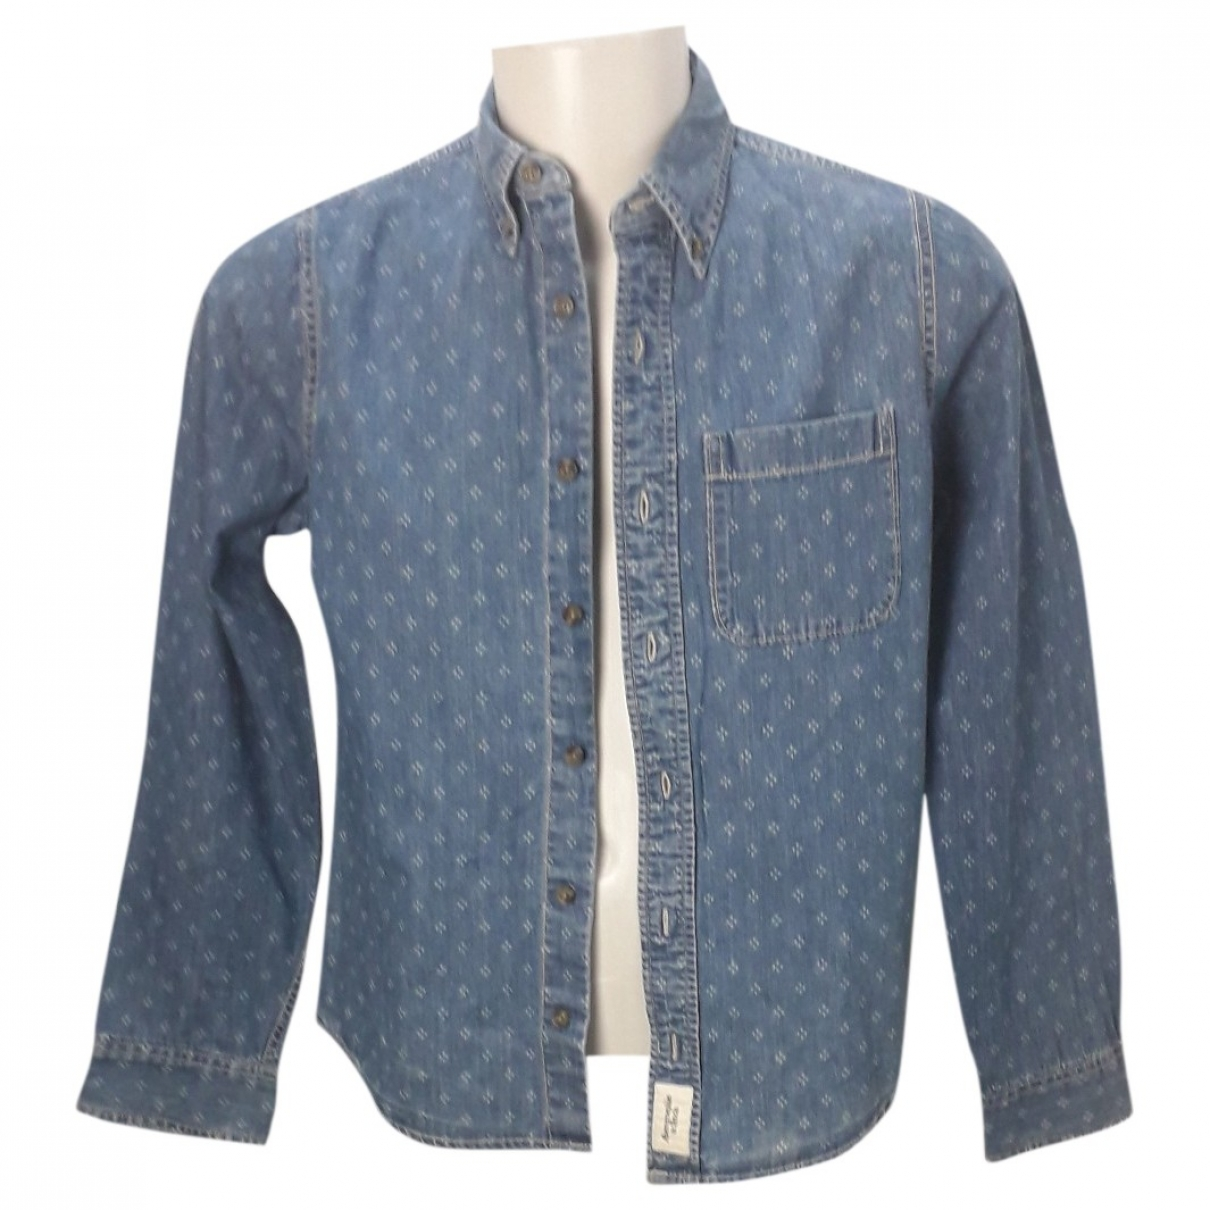 Abercrombie & Fitch \N Cotton Shirts for Men M International